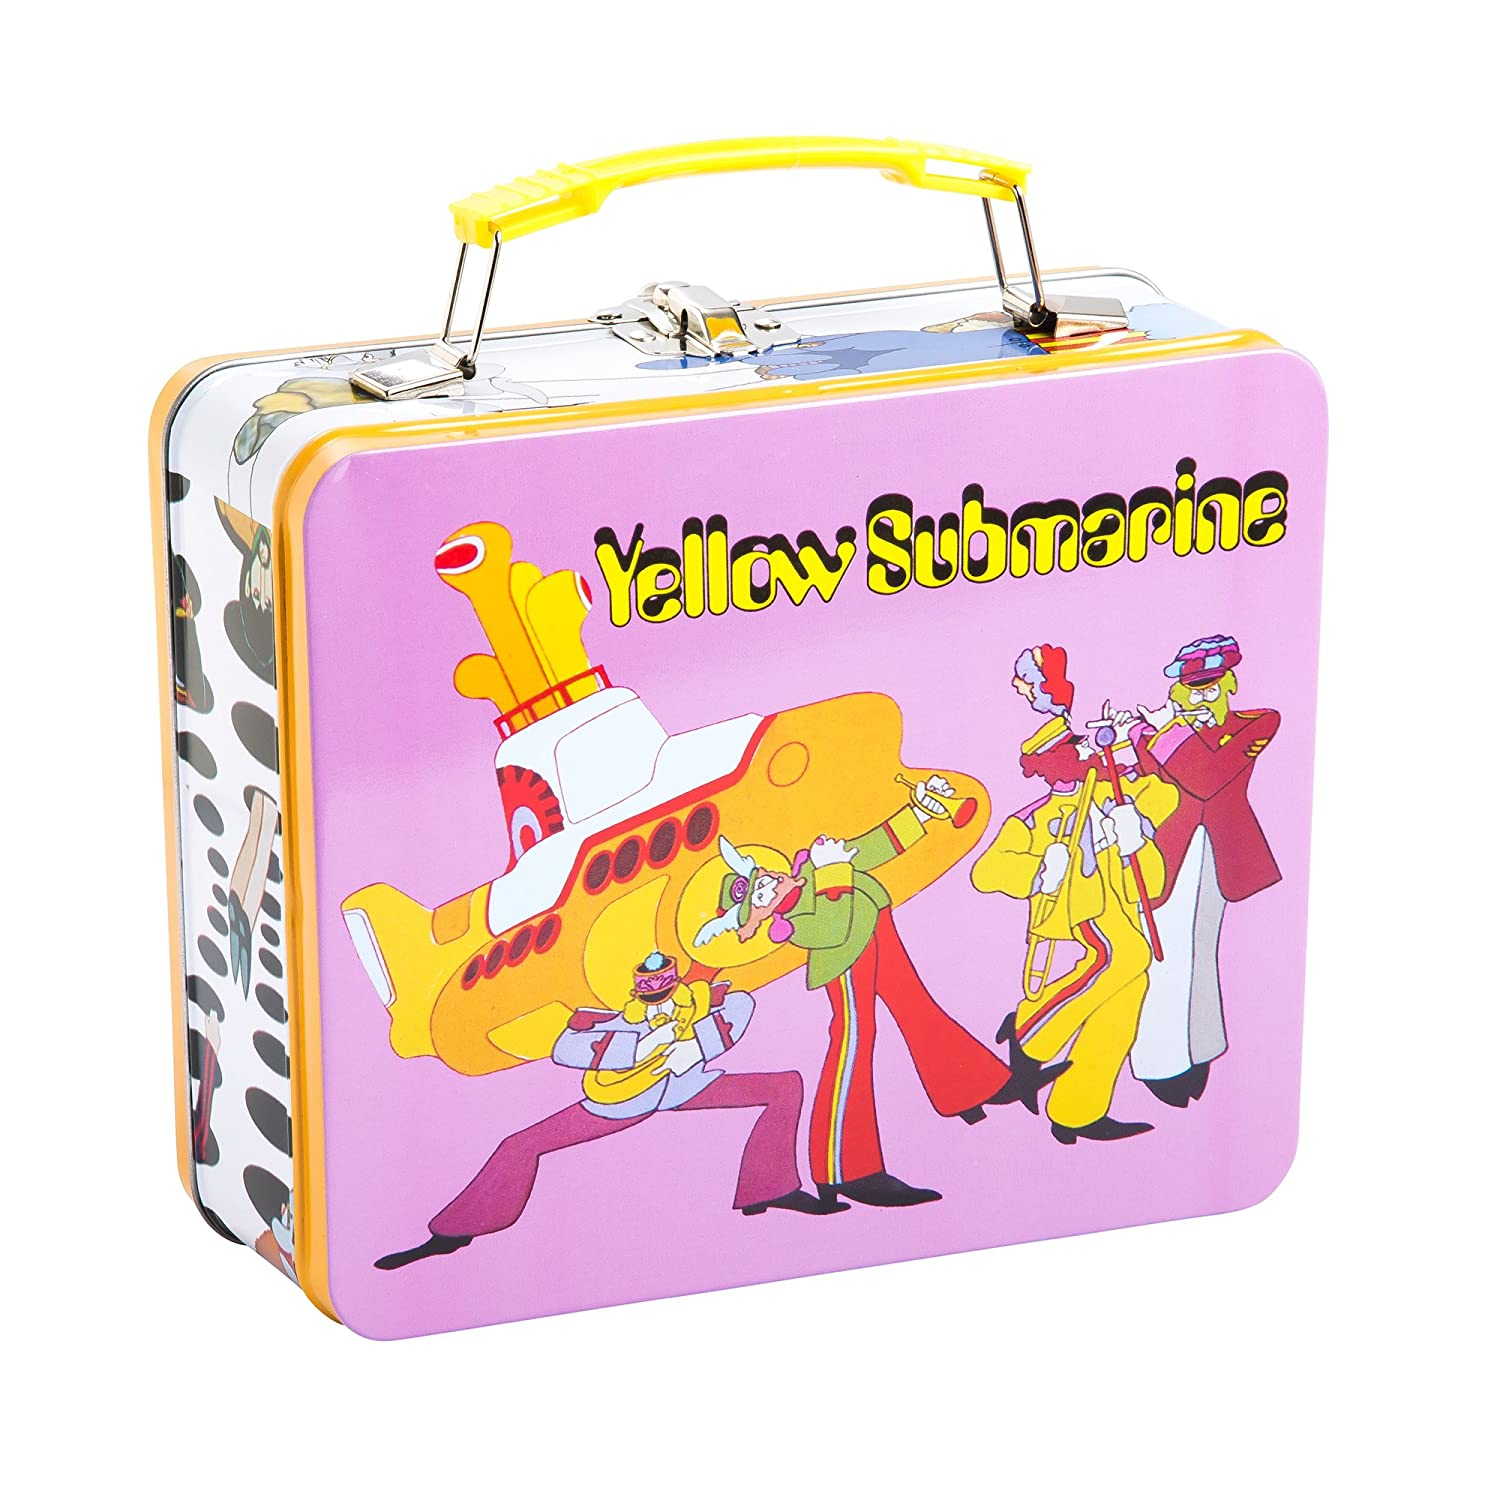 24f6c6decbff Vandor 73070 The The Beatles Yellow Submarine Vintage Shaped Tin Metal  Lunchbox Tote with Handle, Large